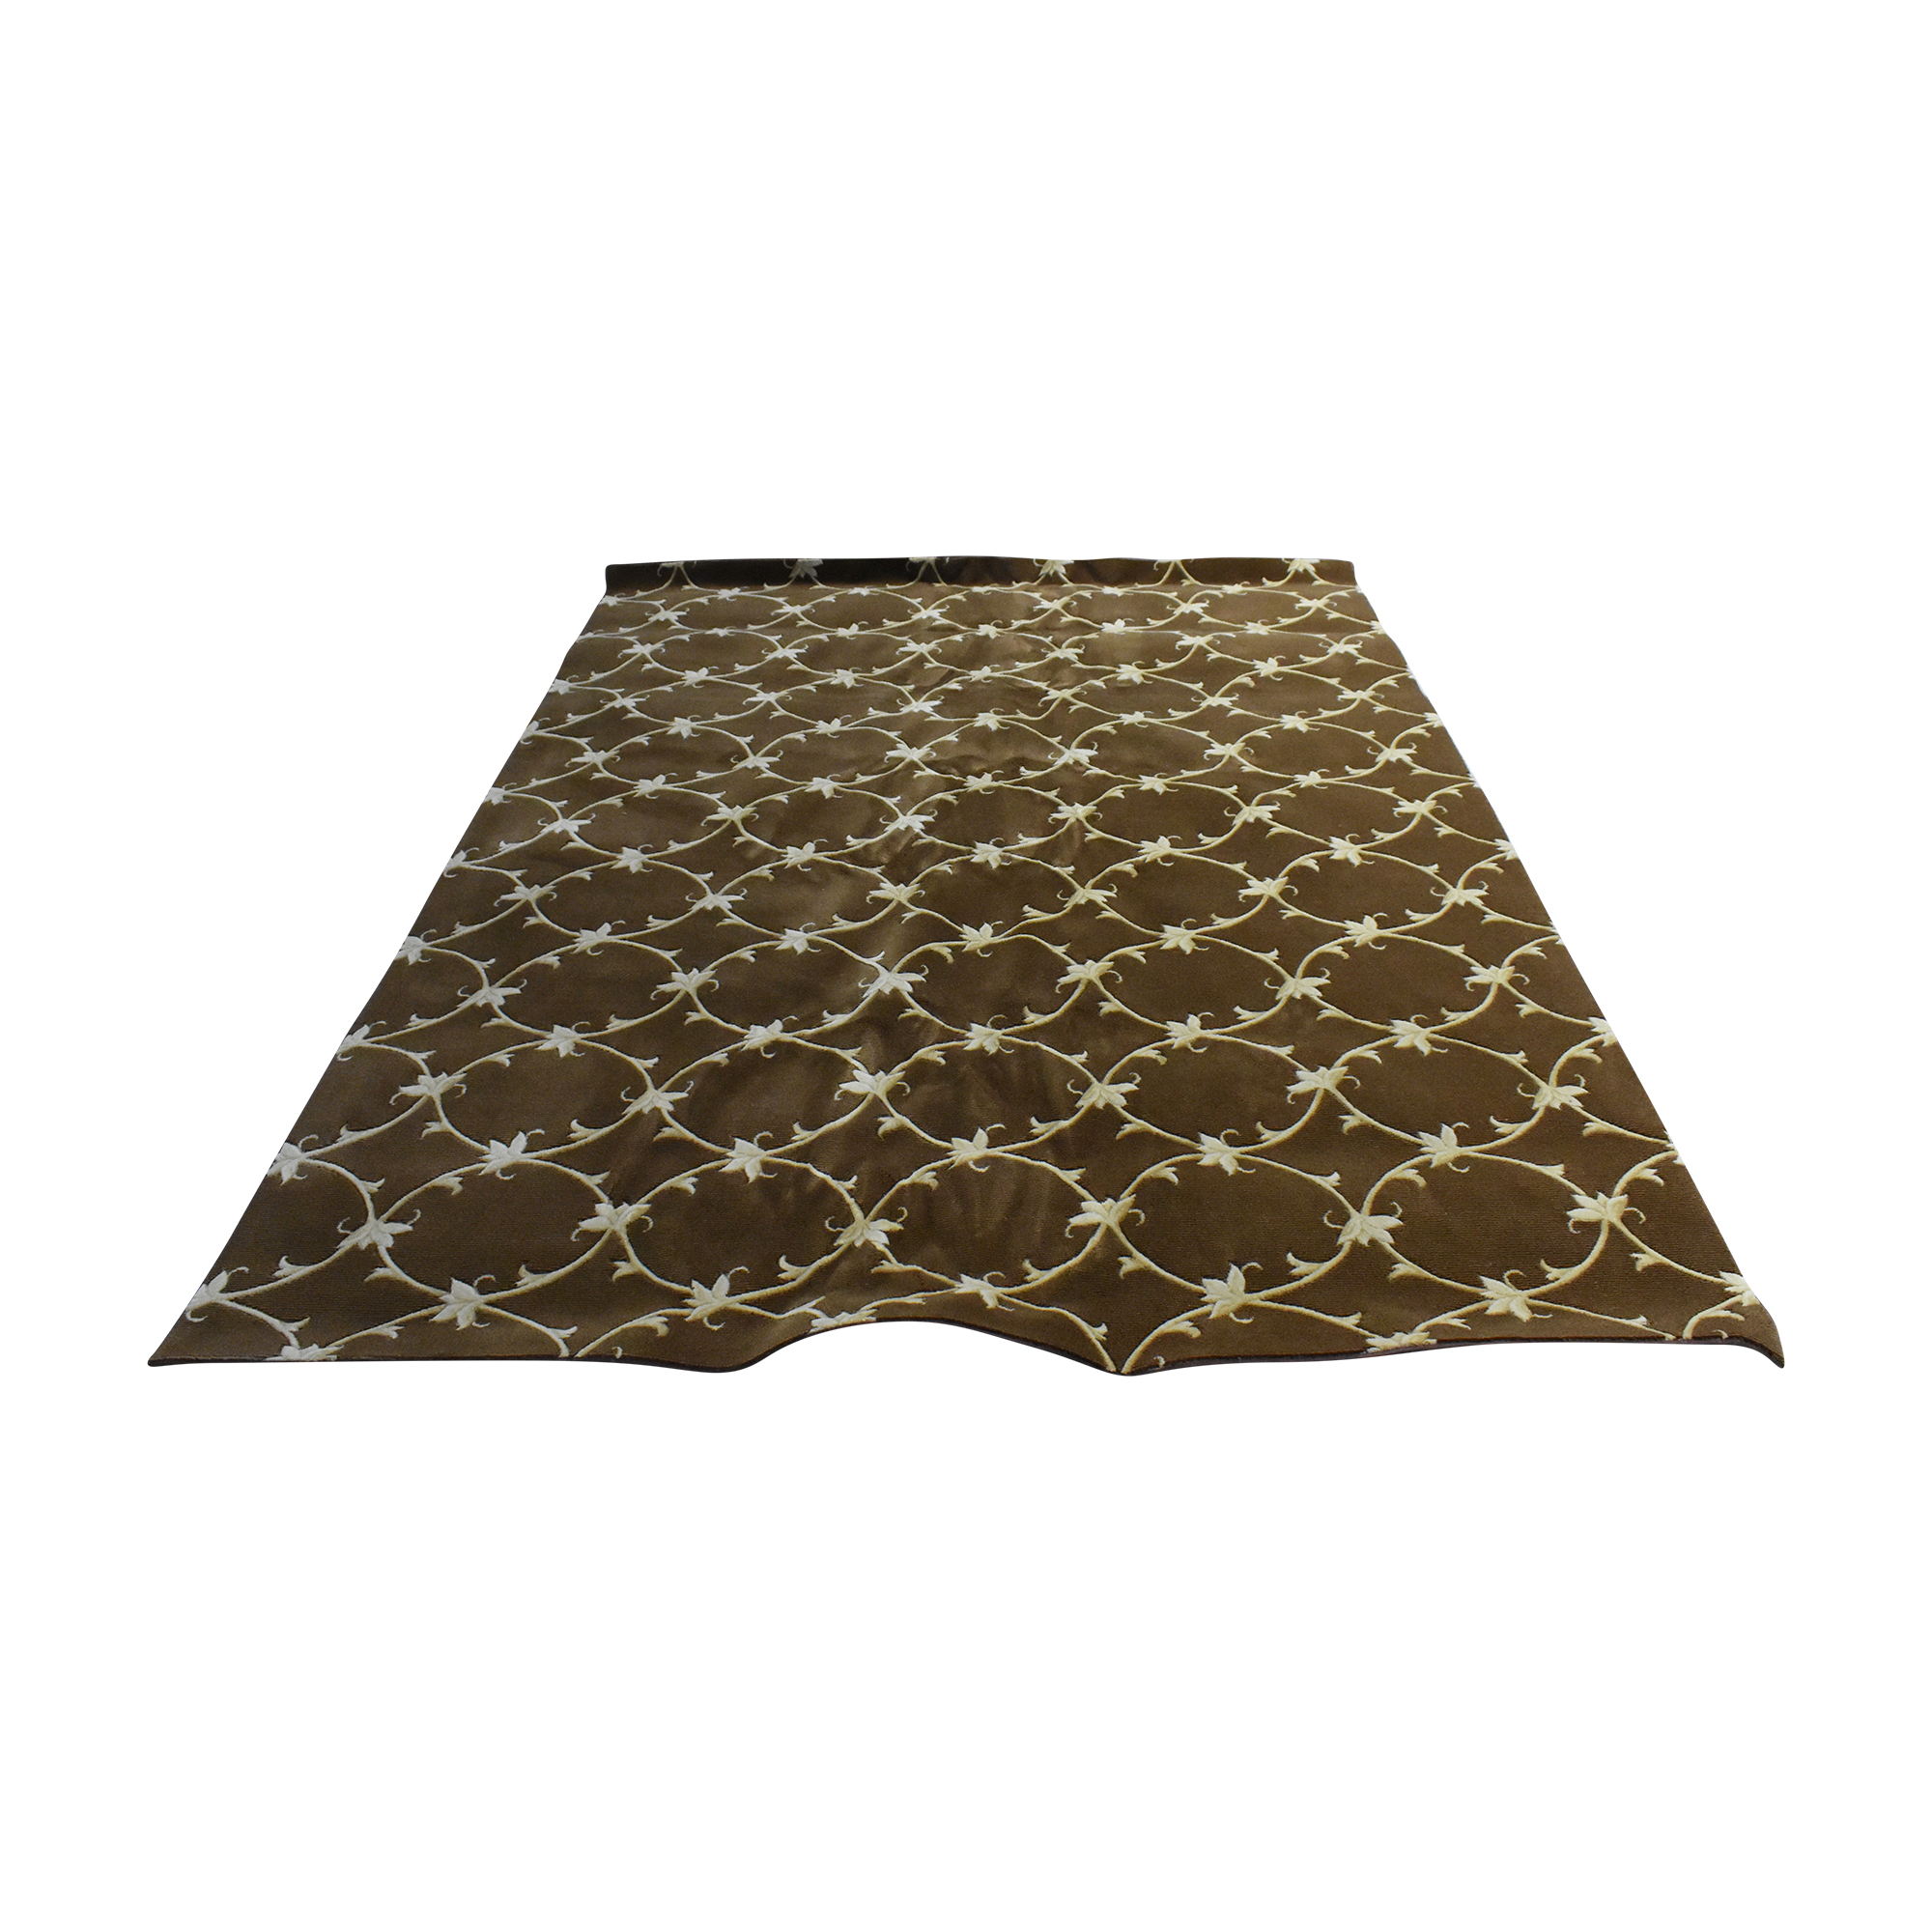 Country Carpet Country Carpet Patterned Area Rug brown and cream